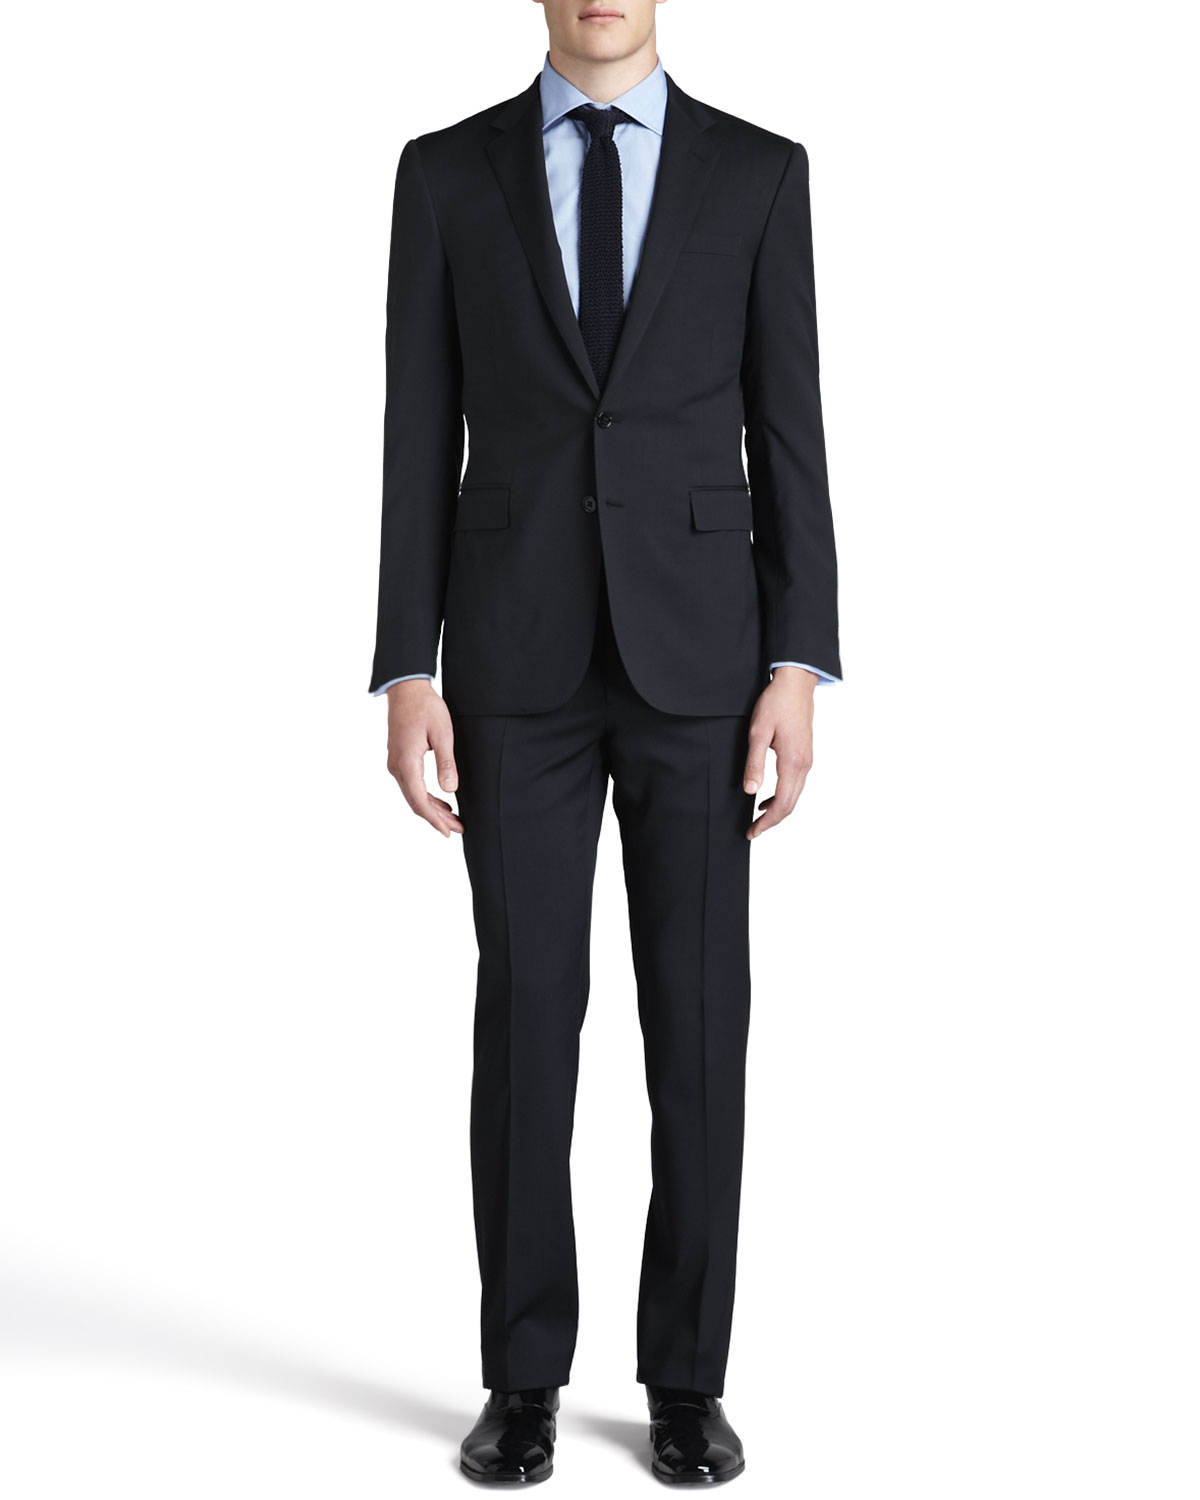 It is an image of Delicate The Black Label Suits